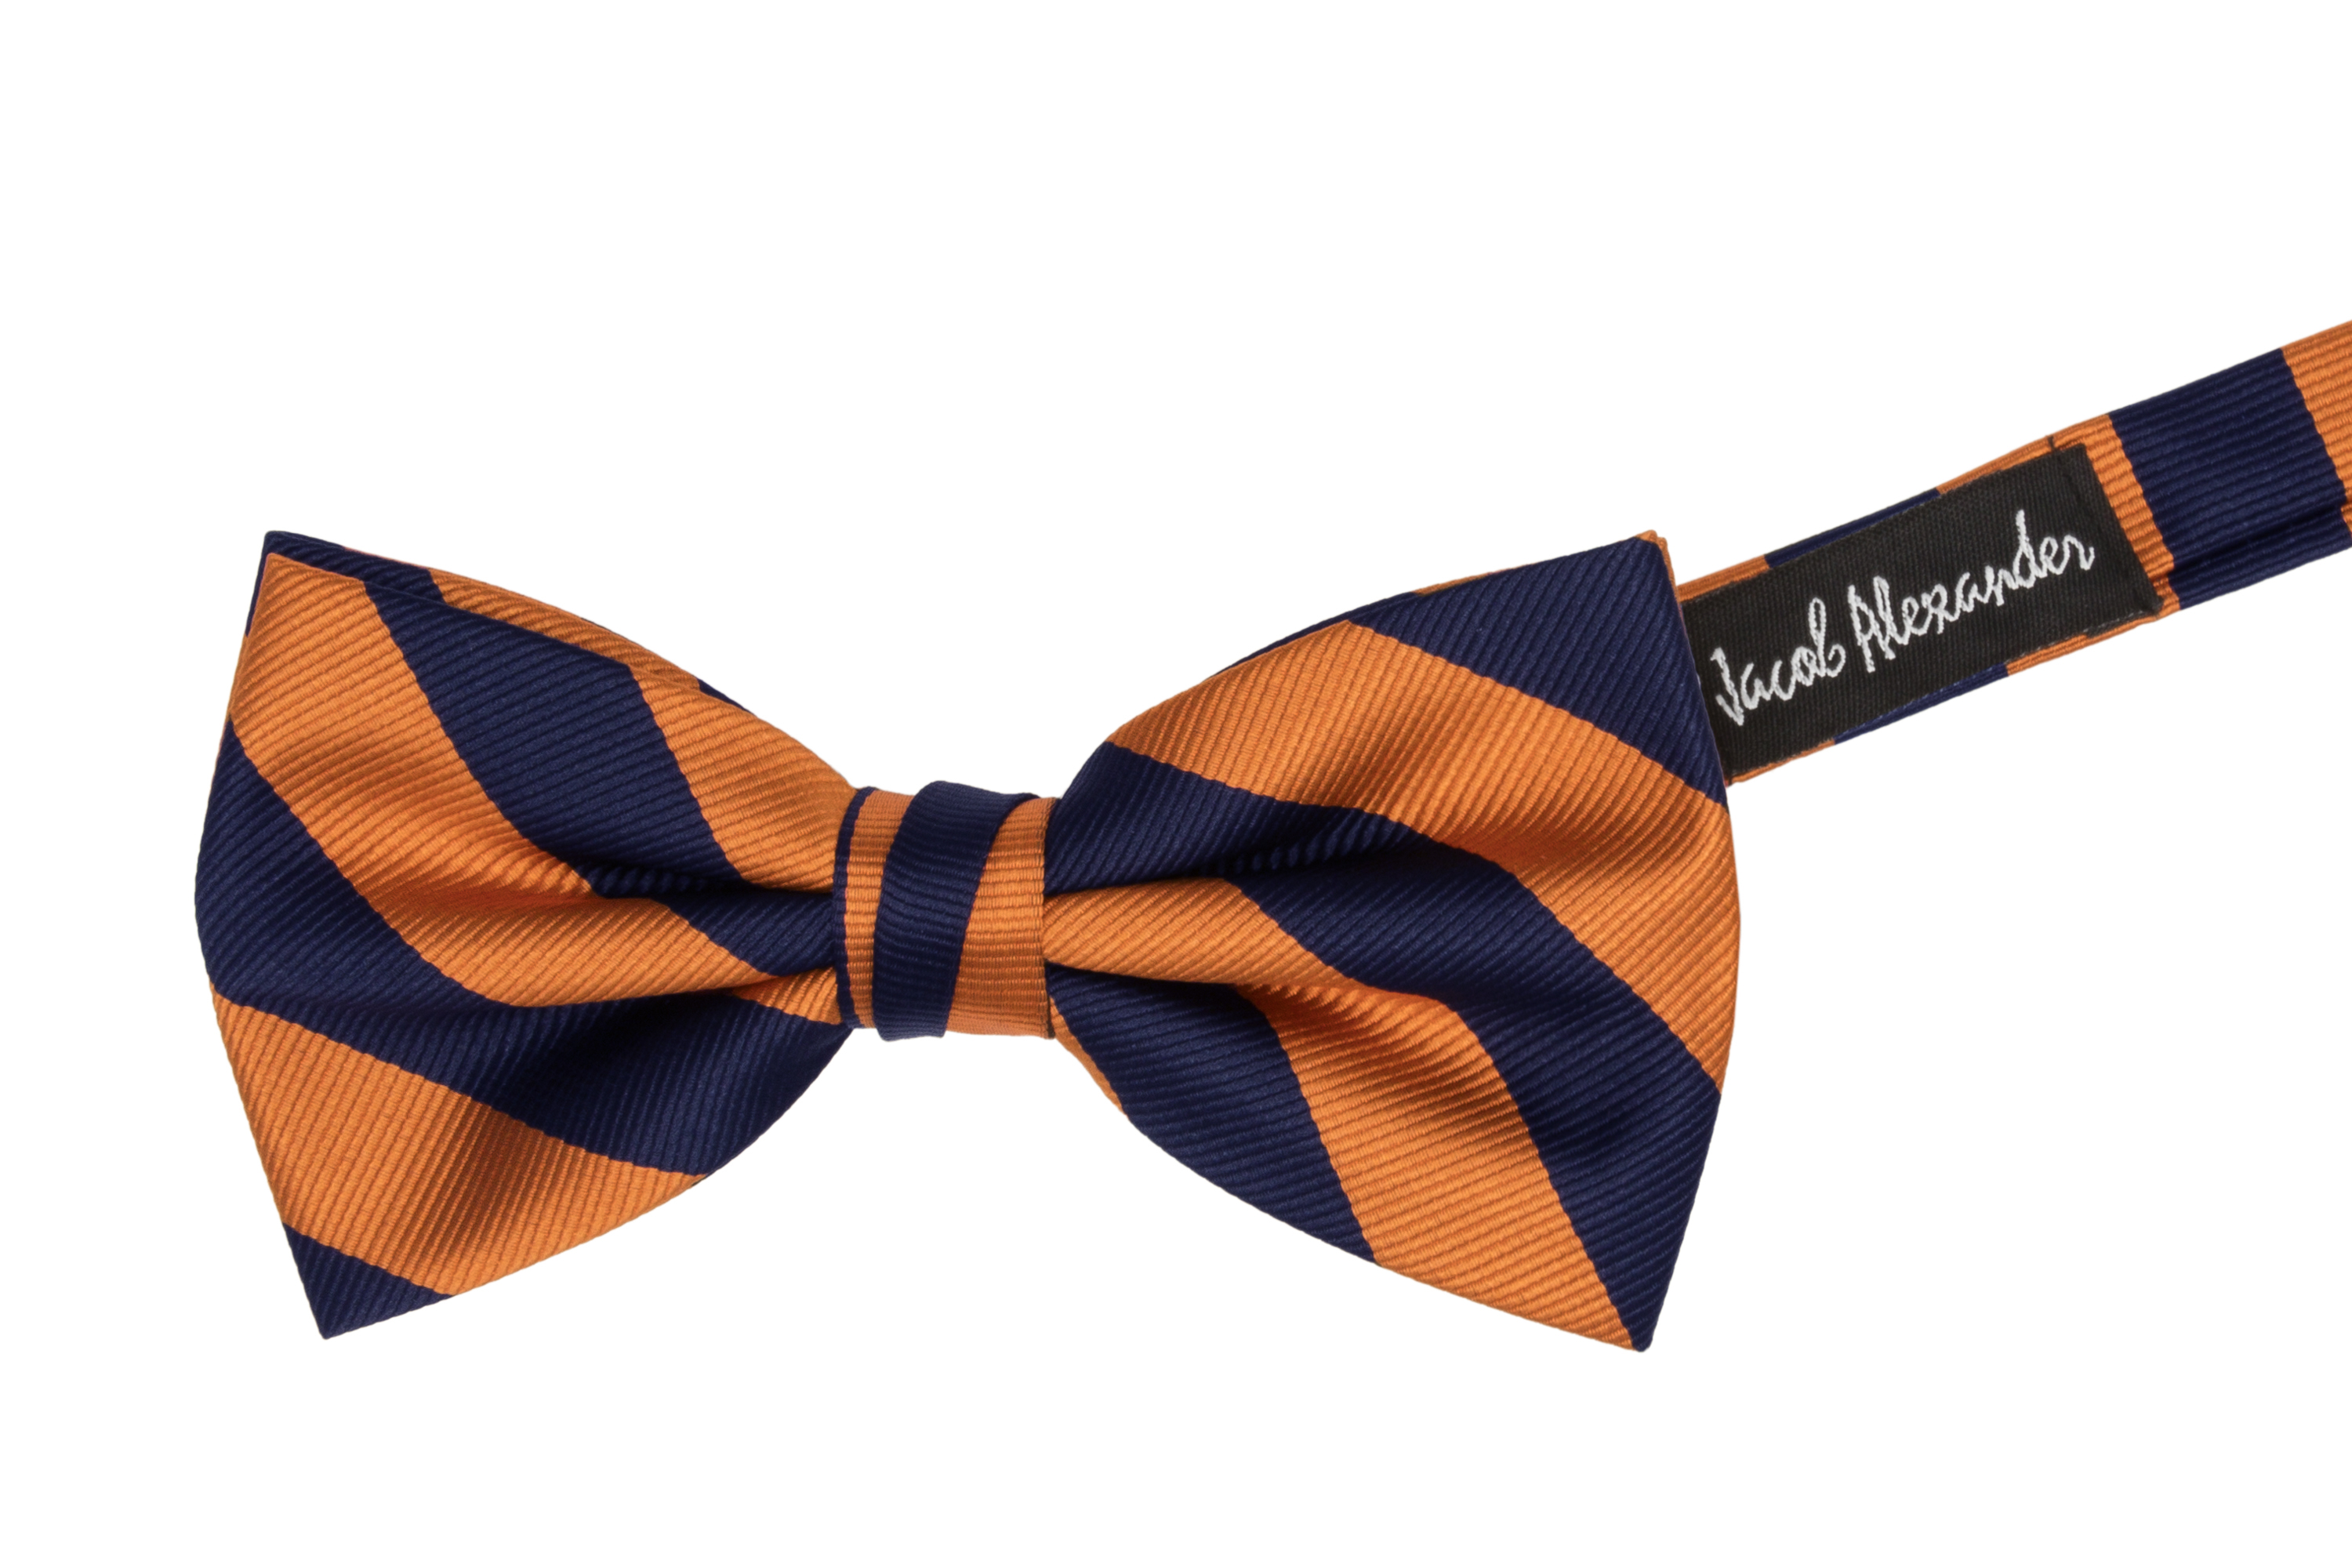 Jacob-Alexander-Stripe-Woven-Men-039-s-College-Striped-Pretied-Bowtie thumbnail 12